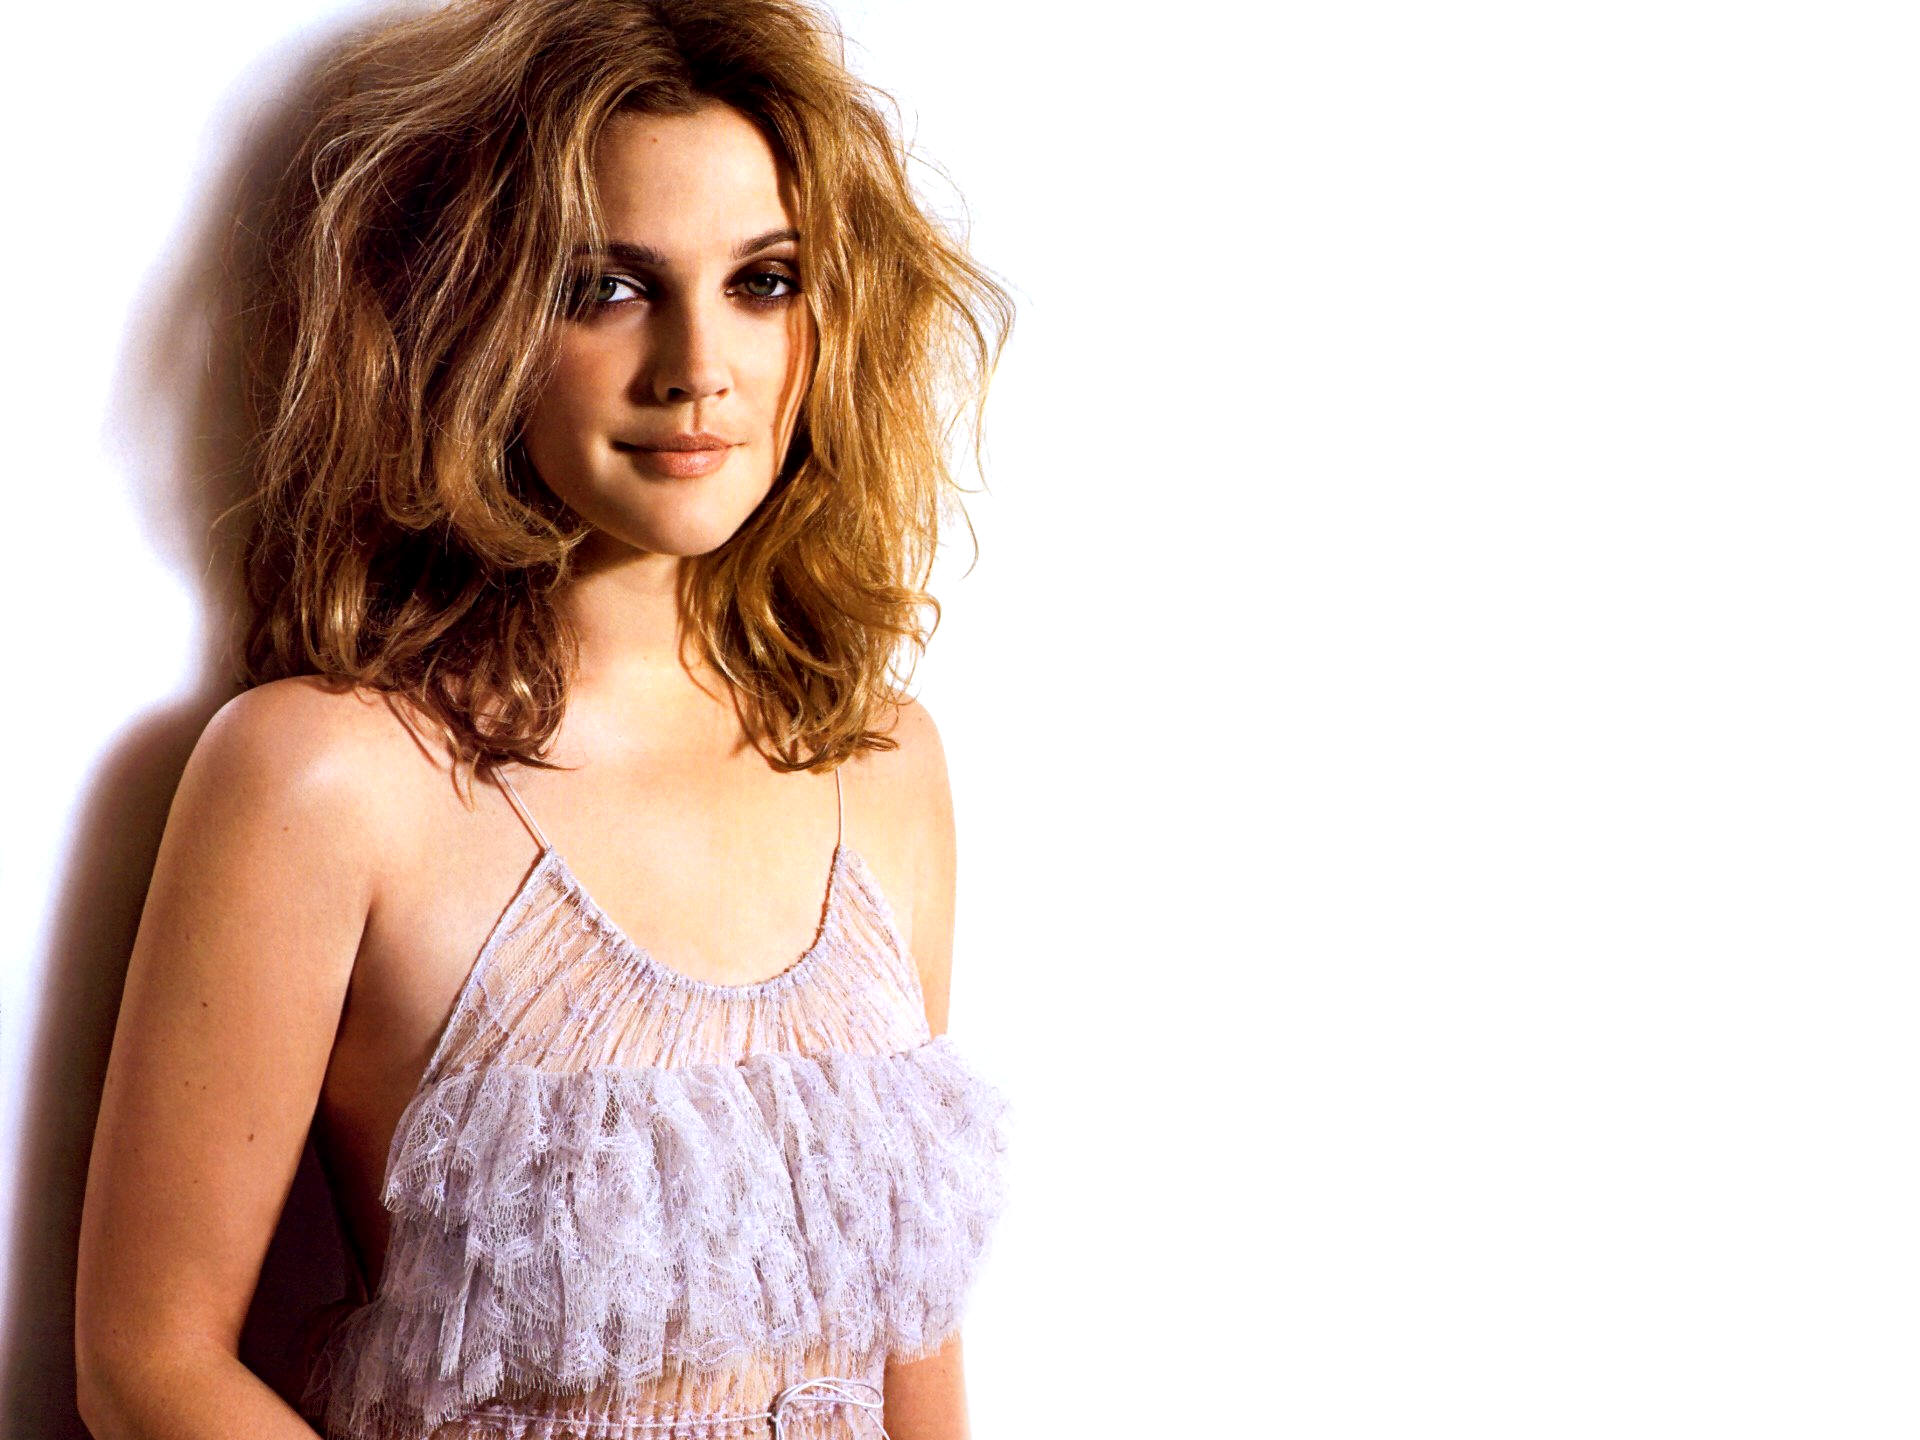 HQ Drew Barrymore Wallpapers | File 300.37Kb